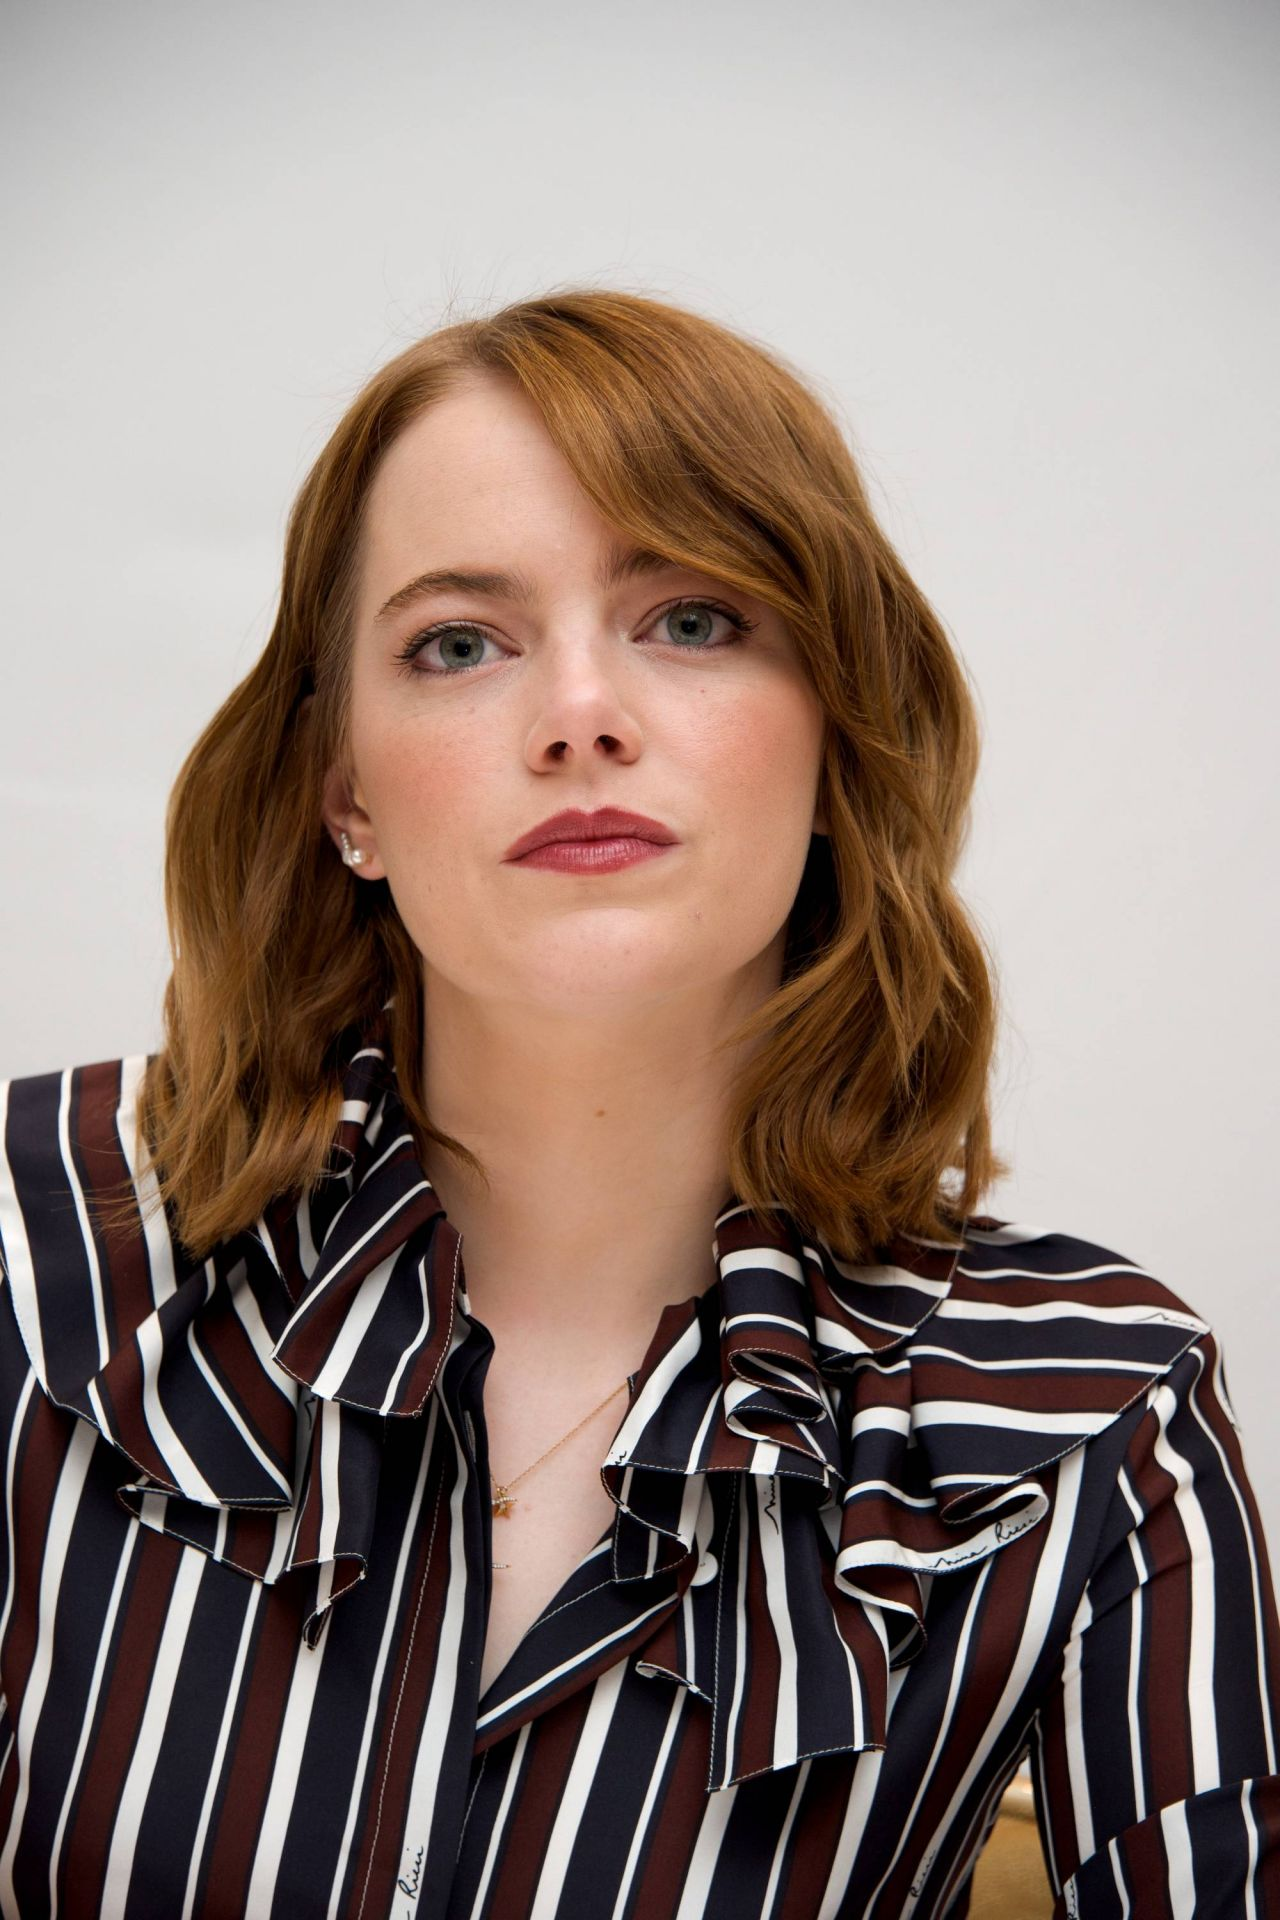 Emma Stone La La Land Tiff 2016 Press Conference